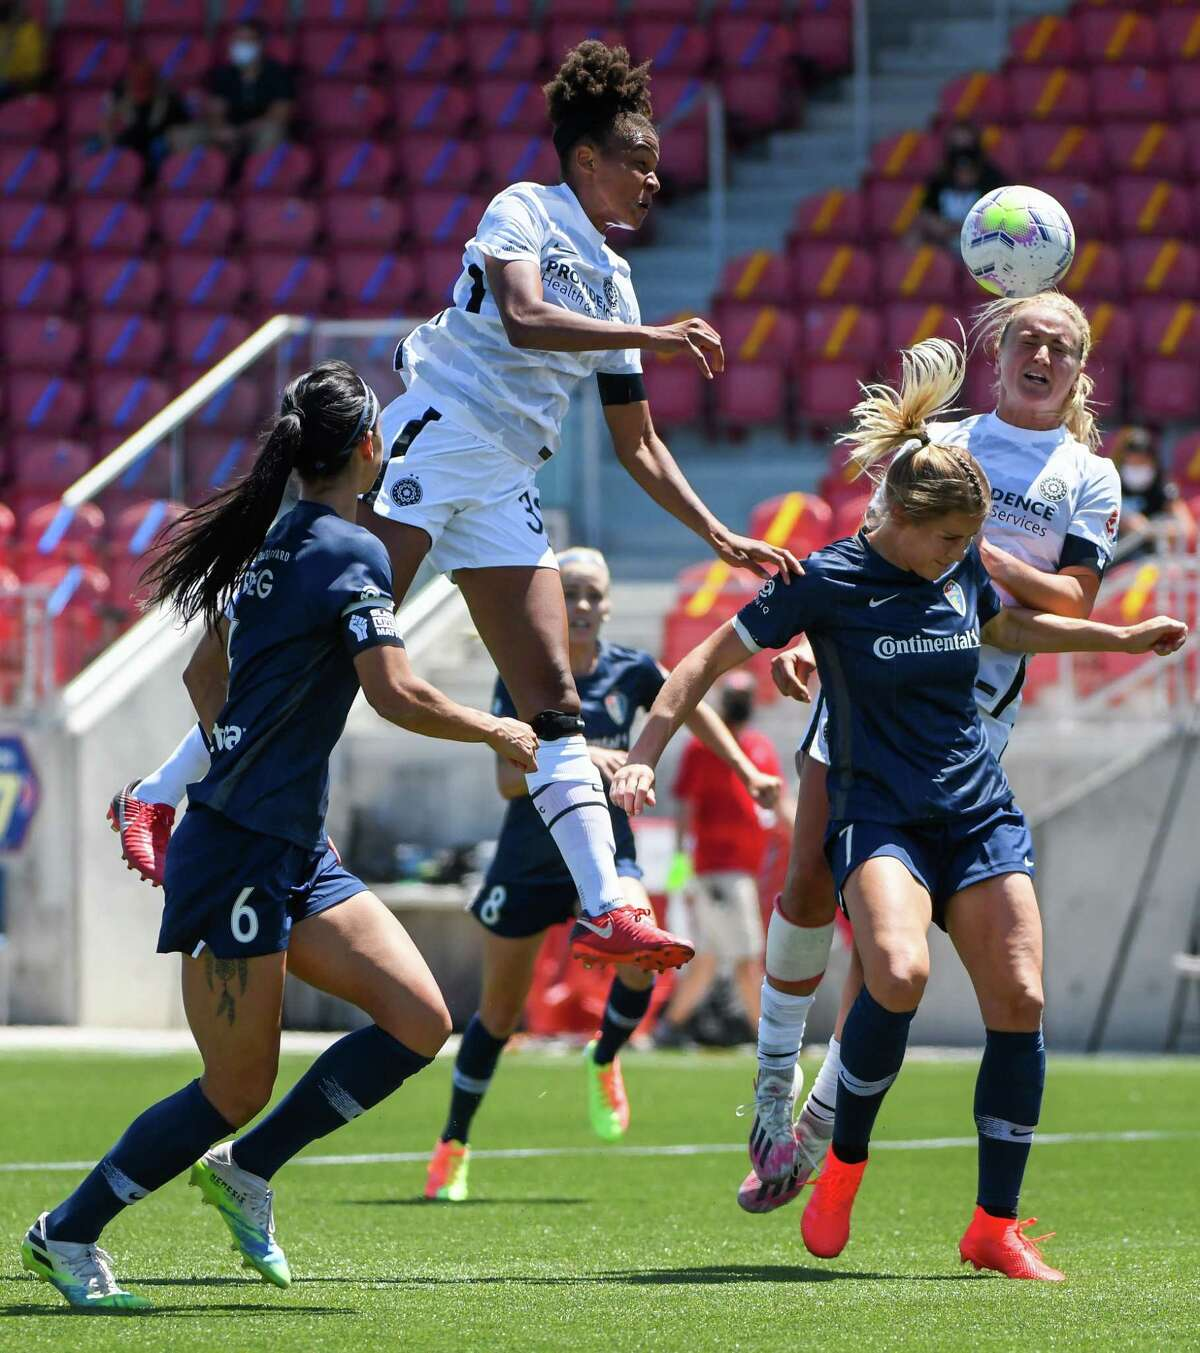 HERRIMAN, UT - JUNE 27: Simone Charley #38 and Lindsey Horan #10 of Portland Thorns FC jump over McCall Zerboni #7 of North Carolina Courage for a header during the first round of the NWSL Challenge Cup at Zions Bank Stadium on June 27, 2020 in Herriman, Utah. (Photo by Alex Goodlett/Getty Images)